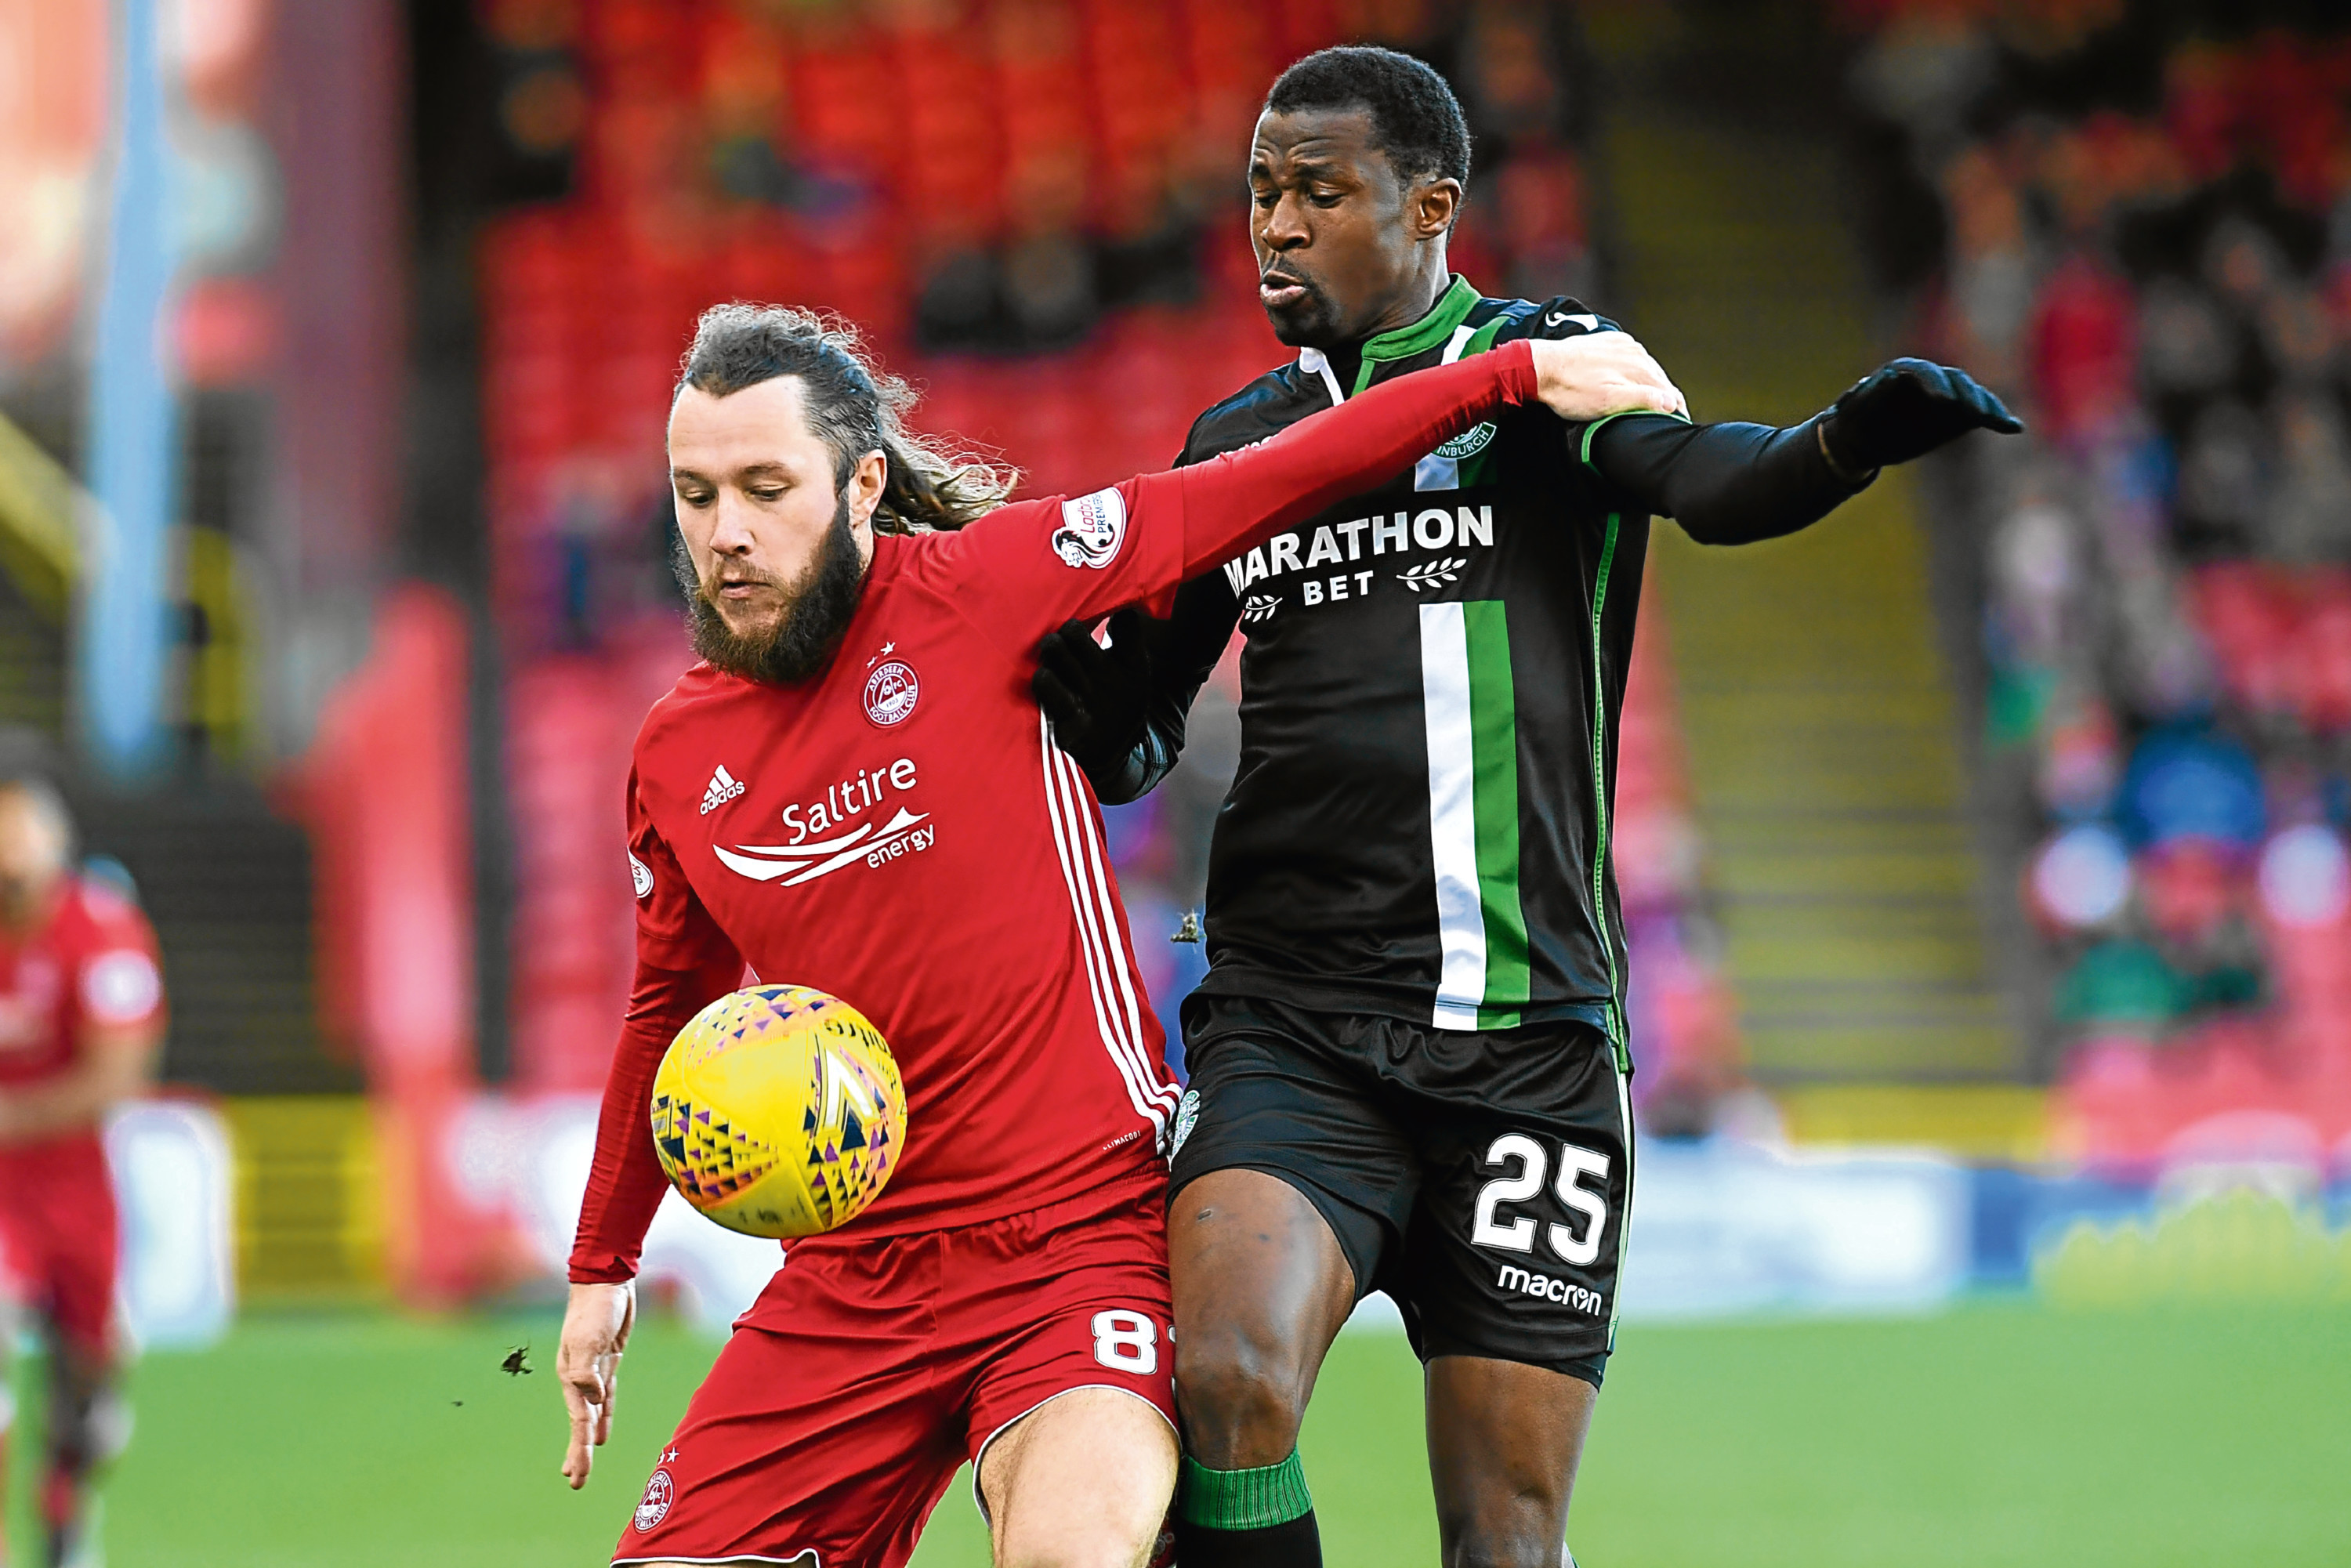 Hibernian's Efe Ambrose, right, with Aberdeen's Stevie May.